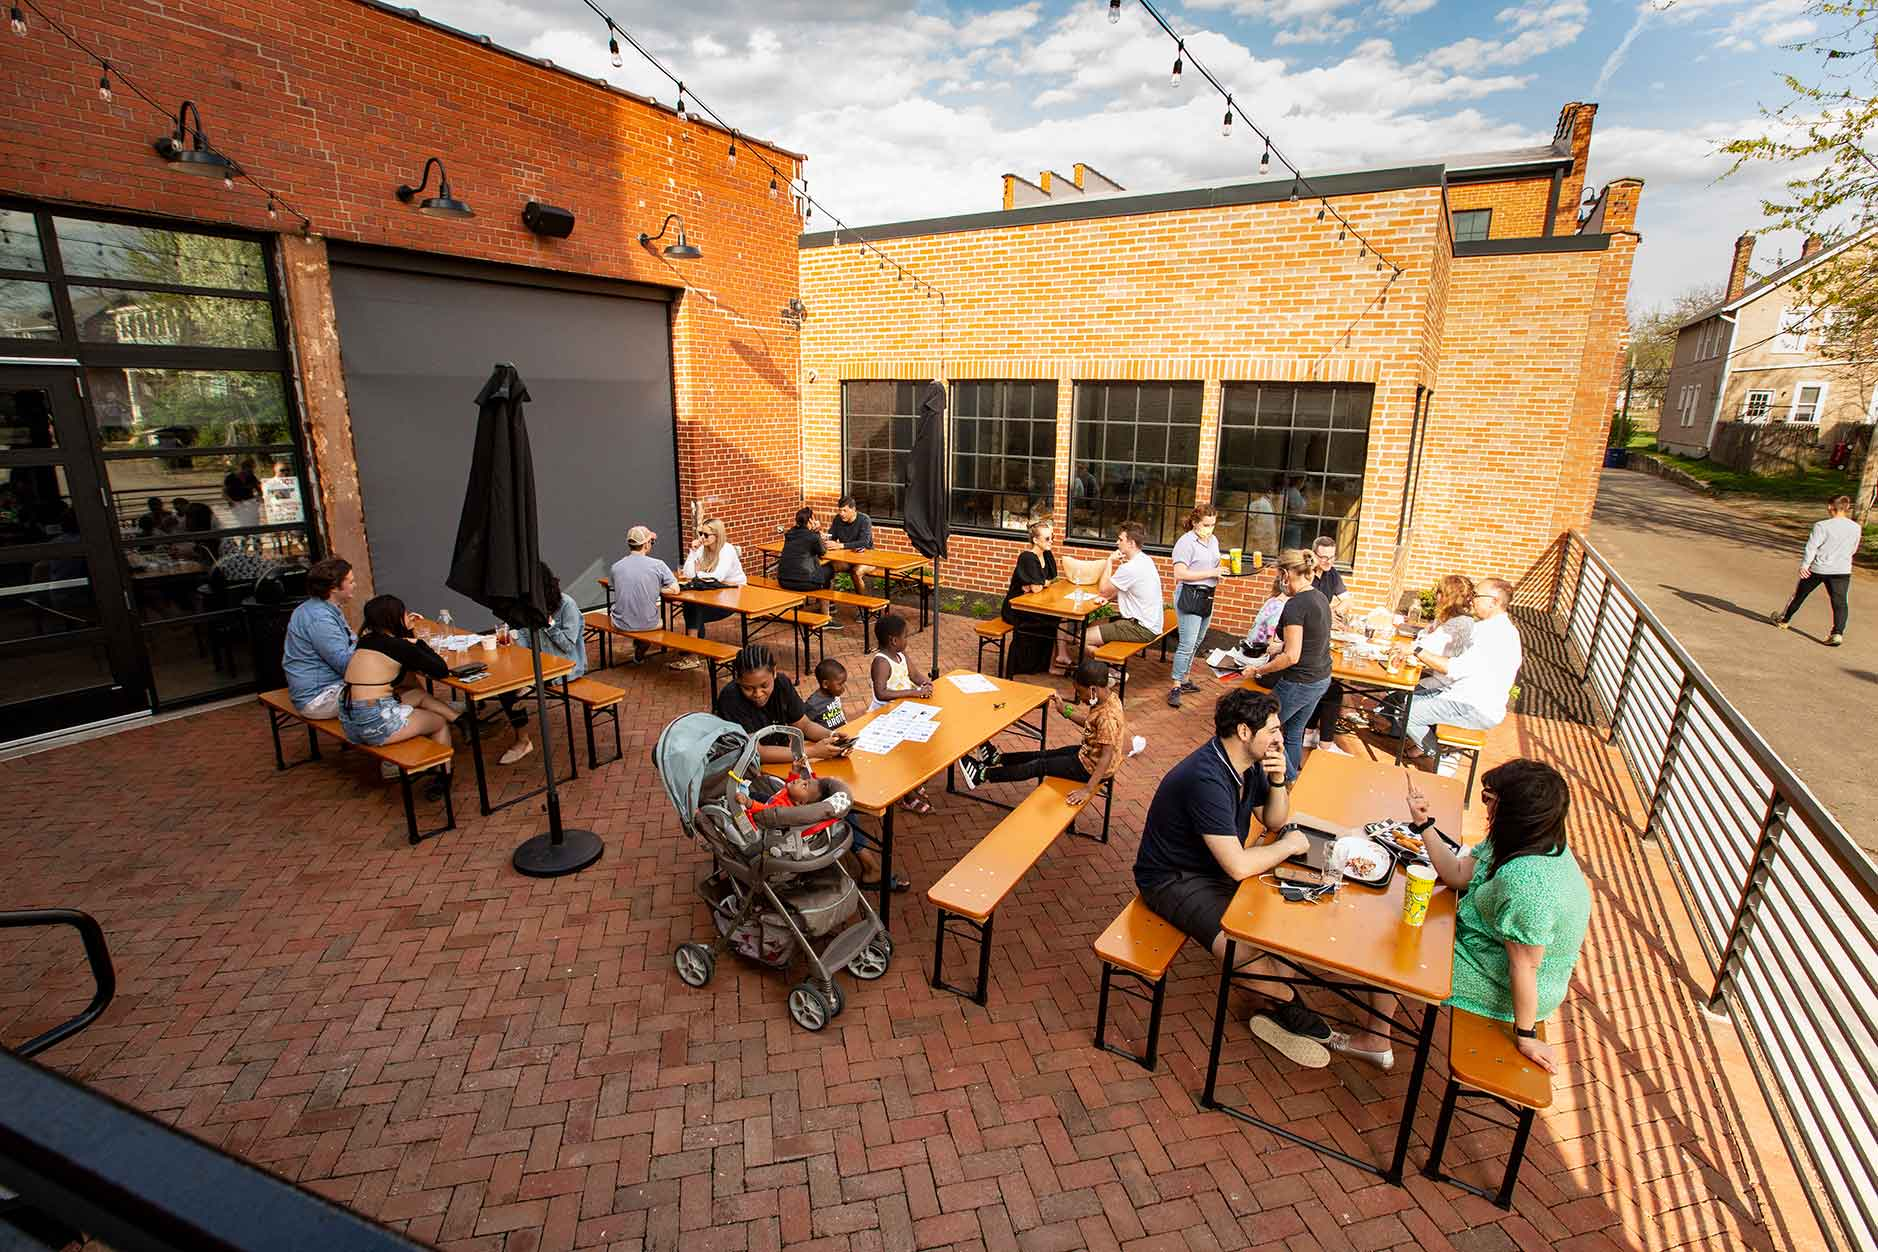 People seated at picnic tables on brick paved outdoor patio.